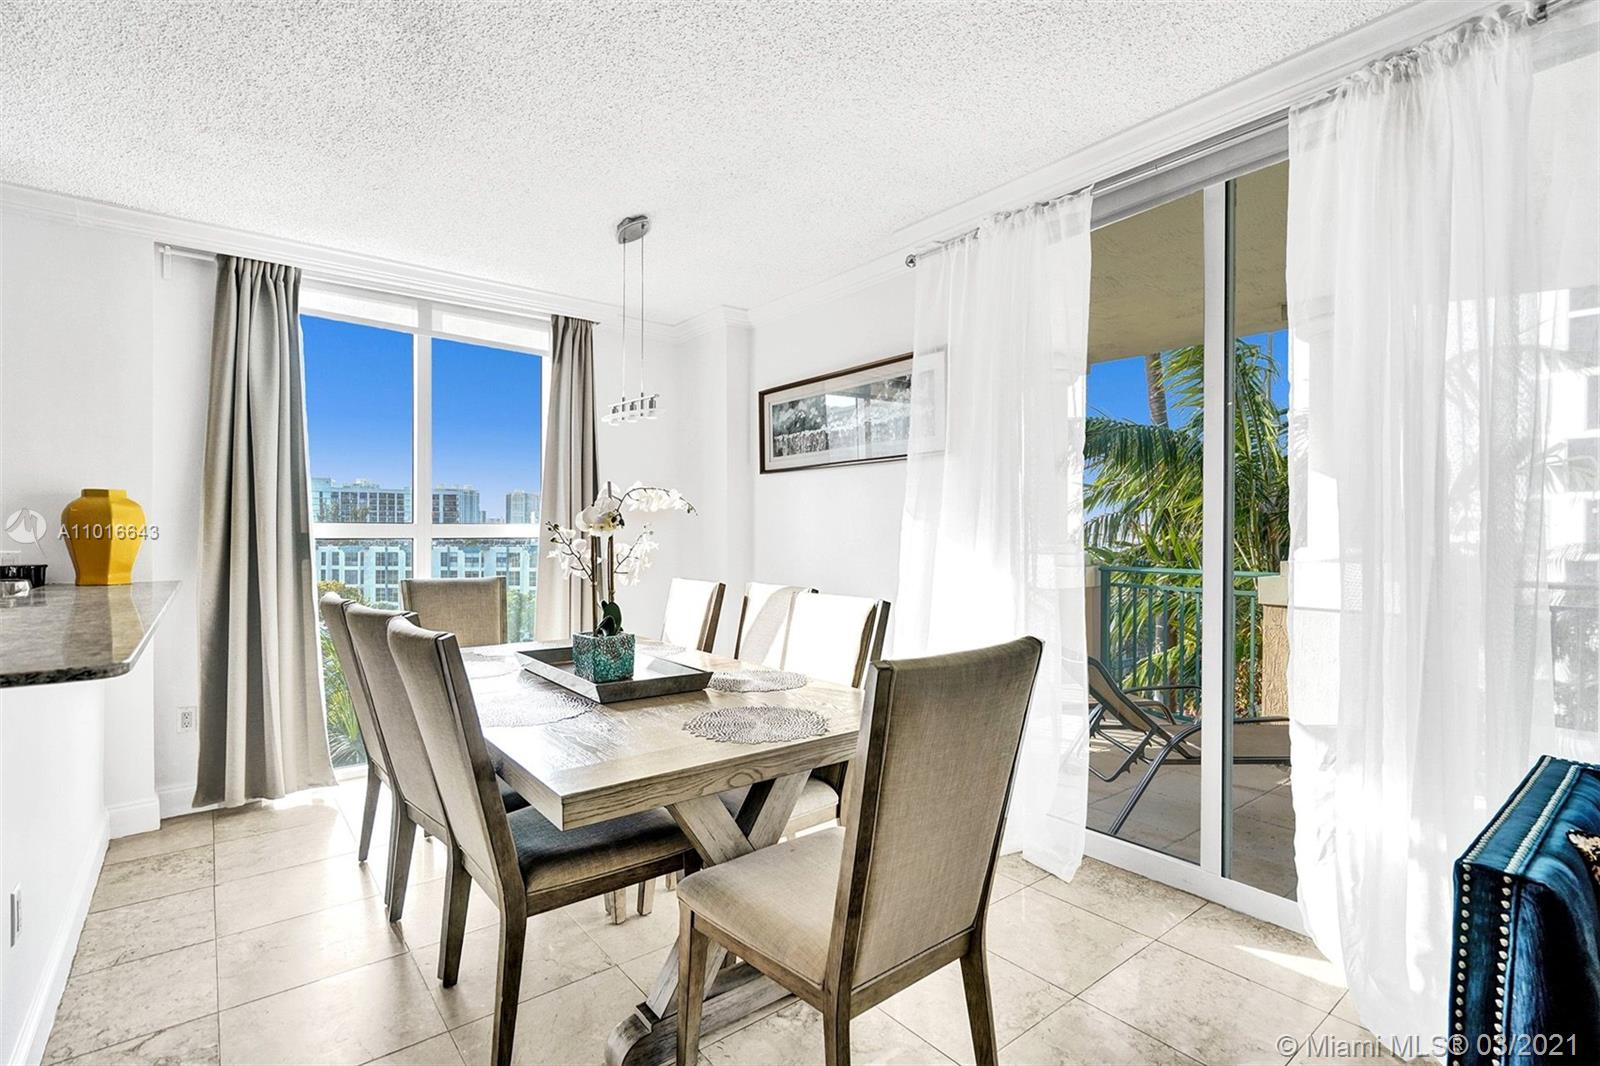 Photo of 17555 Atlantic Blvd #608, Sunny Isles Beach, Florida, 33160 - Kitchen View to the Living Room